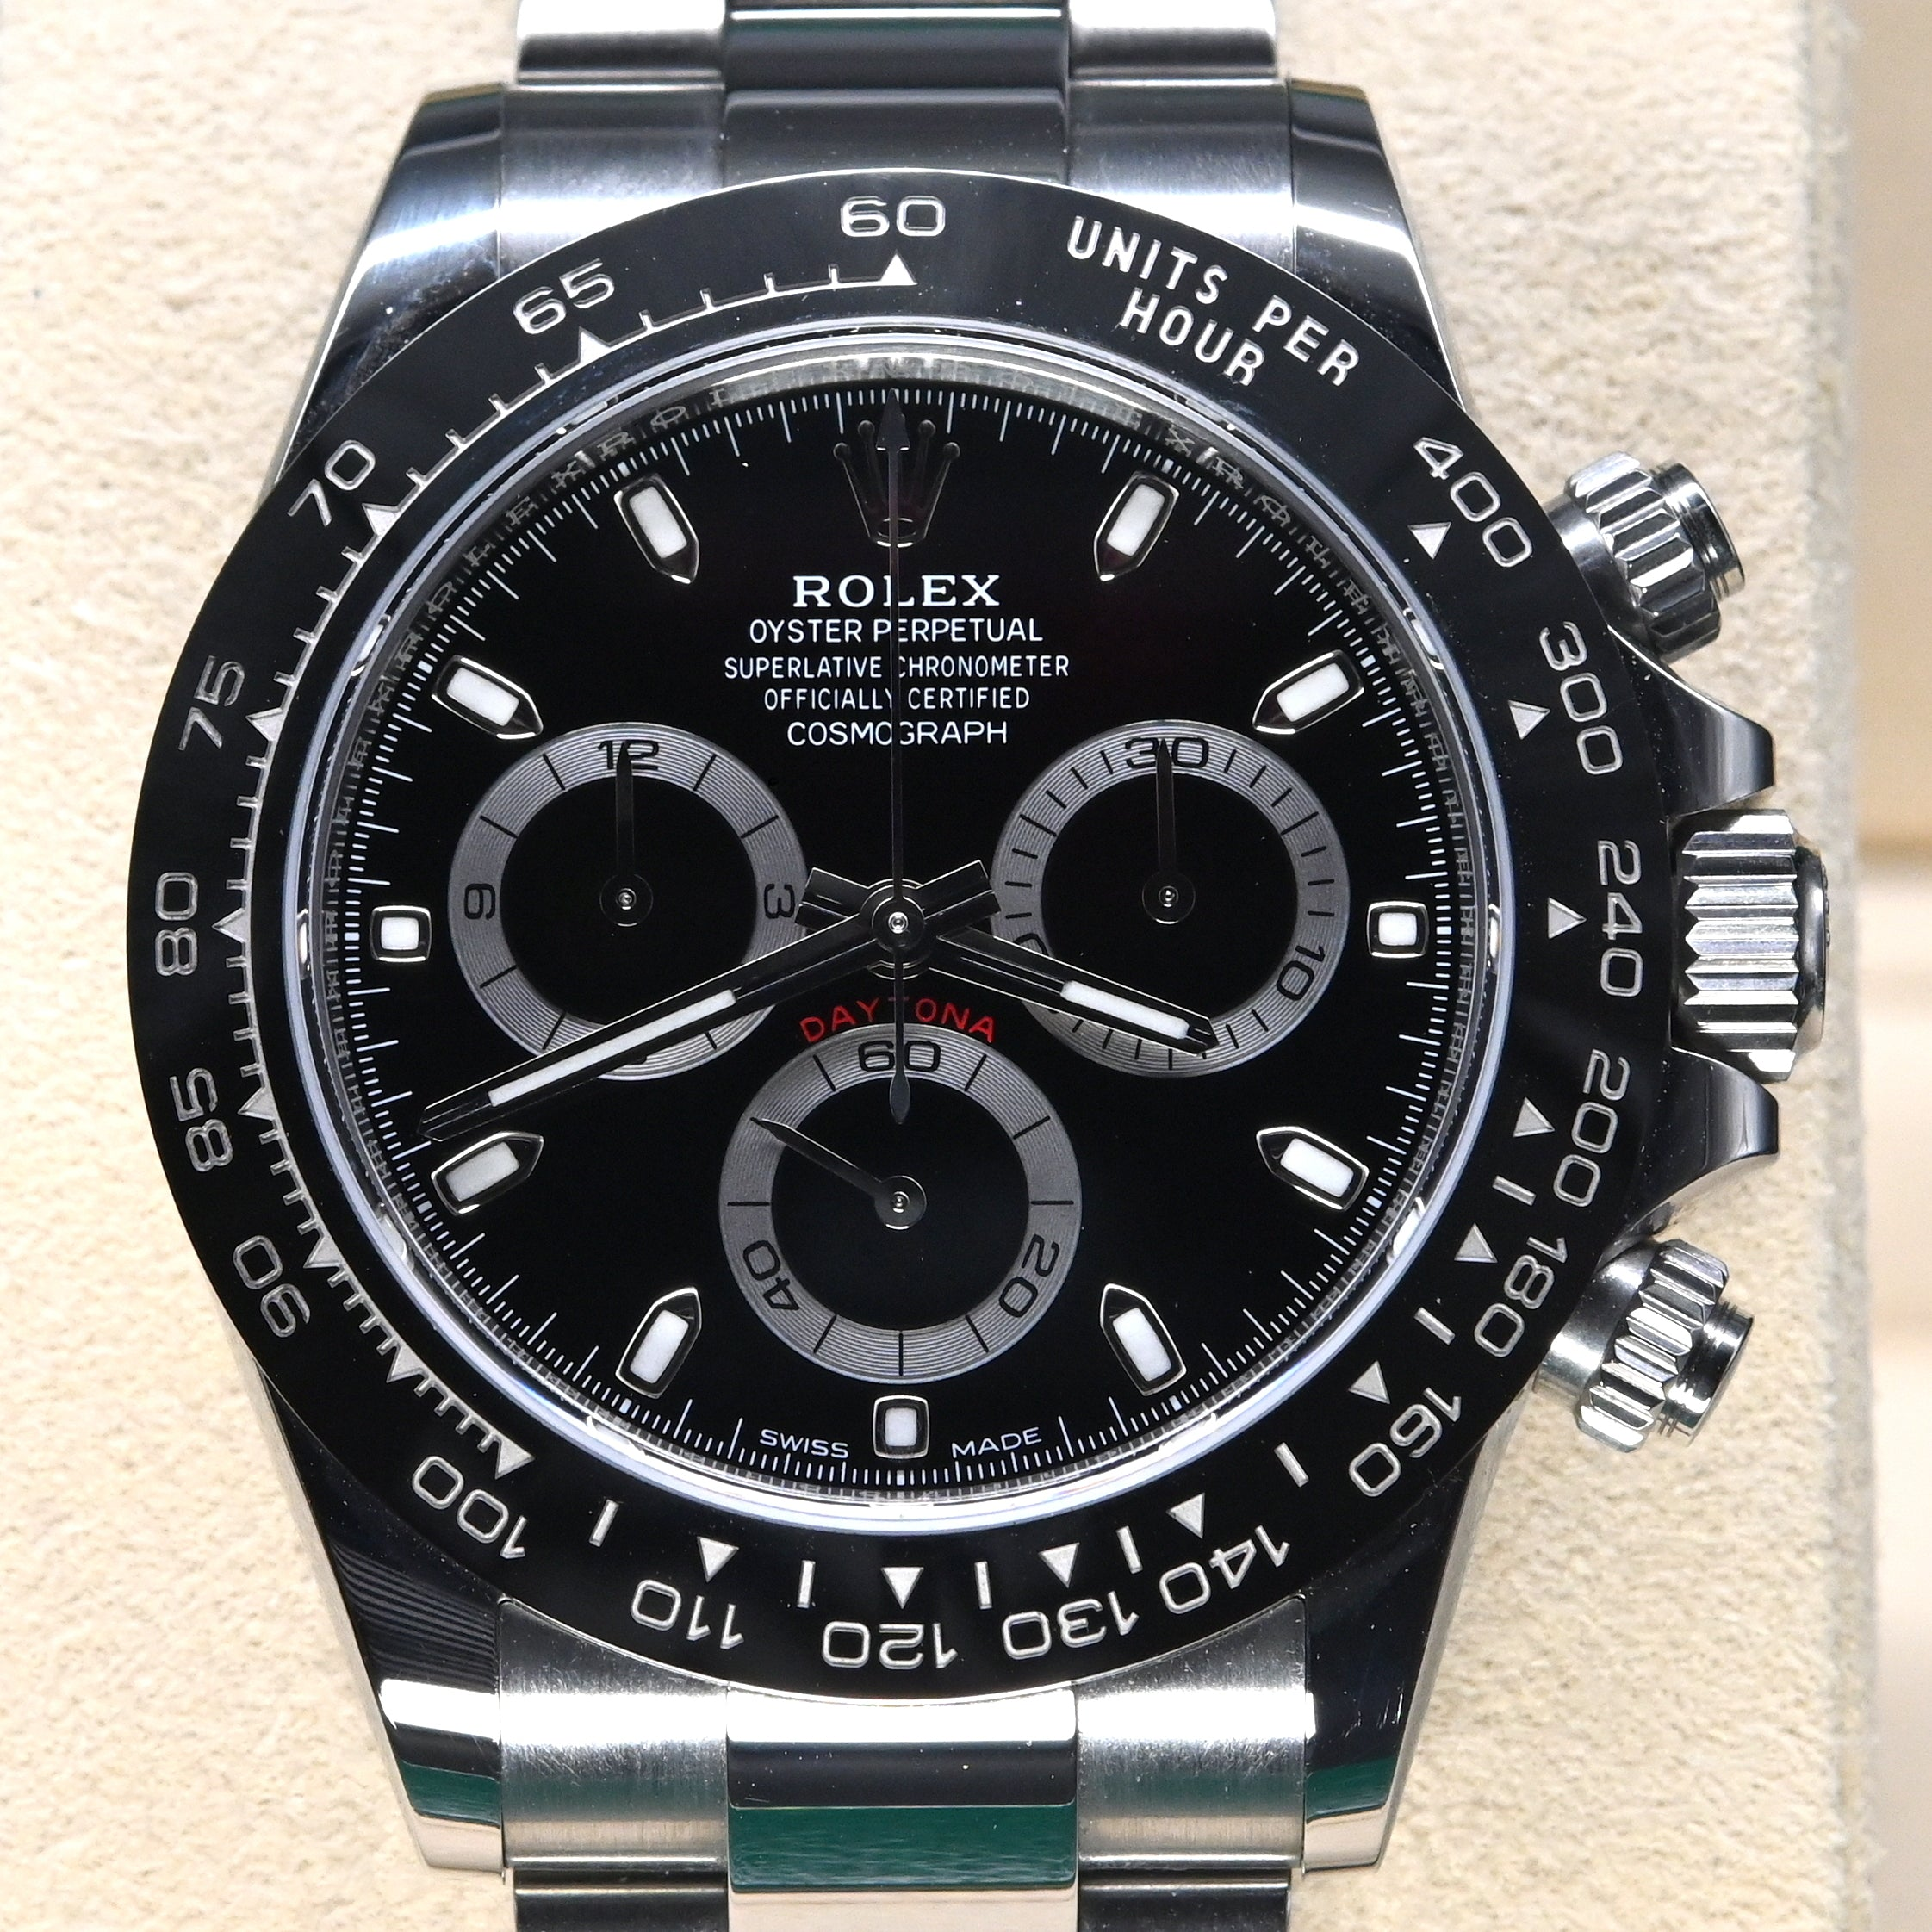 [Pre-Owned Watch] Rolex Cosmograph Daytona 40mm 116500LN Black Dial (888)